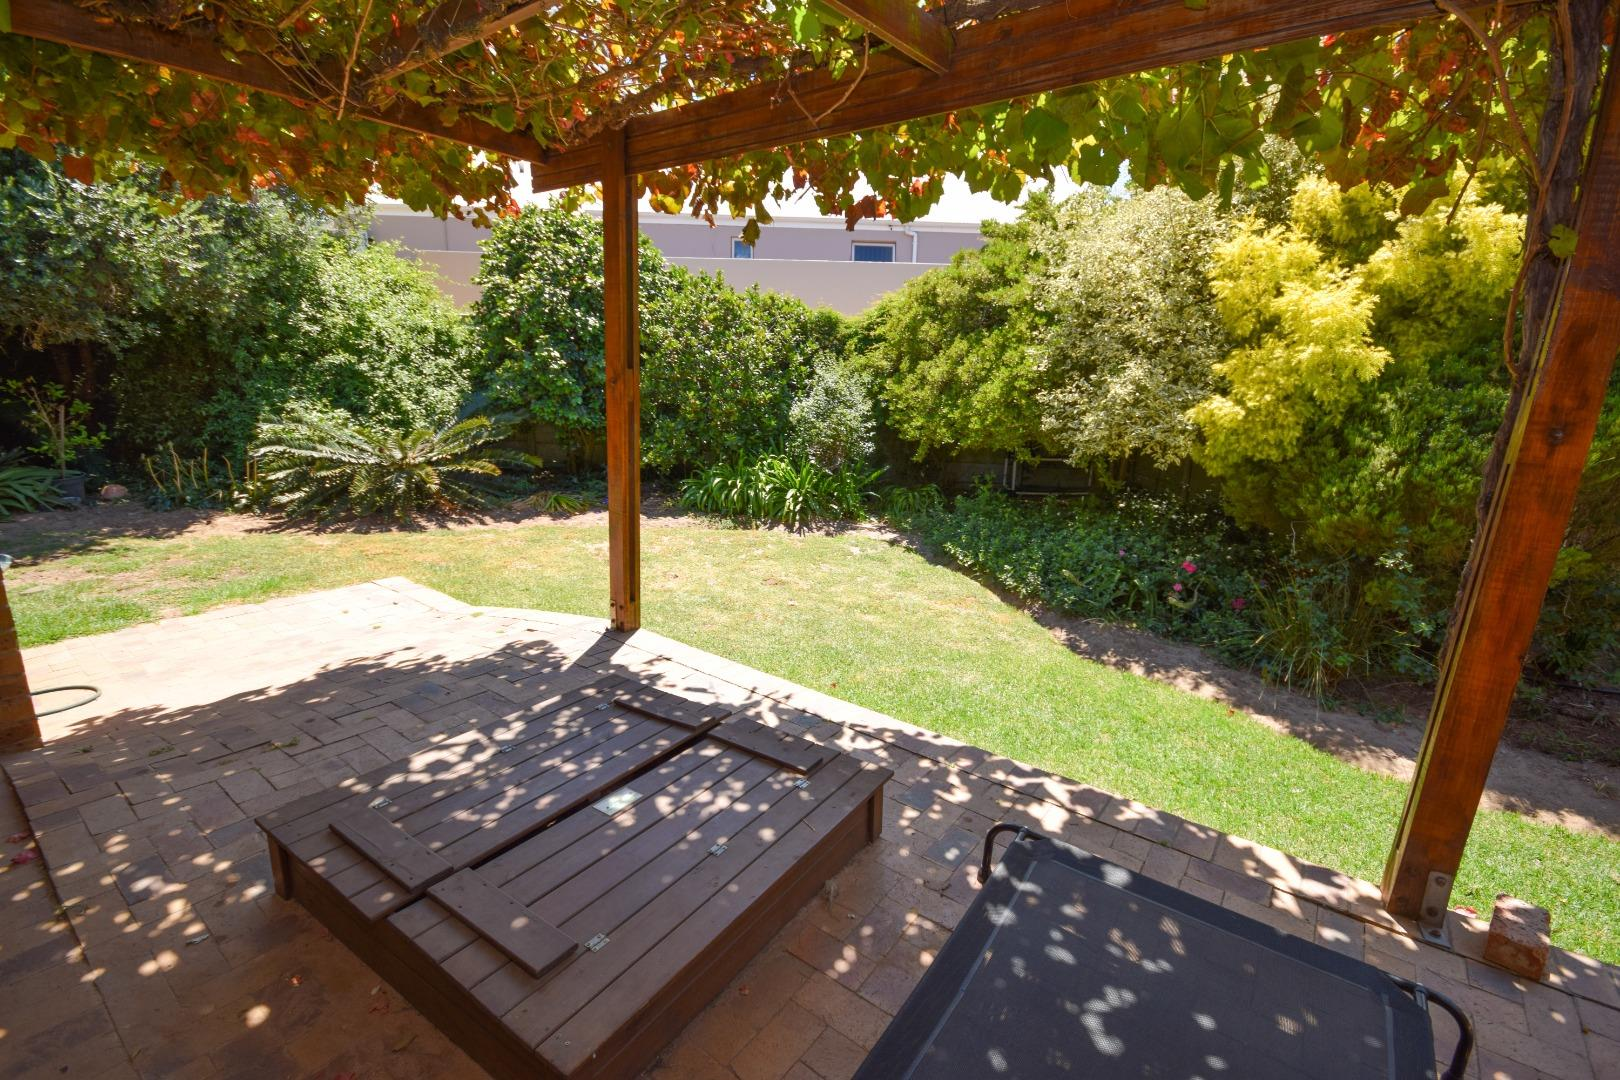 3 Bedroom House for Sale in Rosendal, Bellville - Western Cape